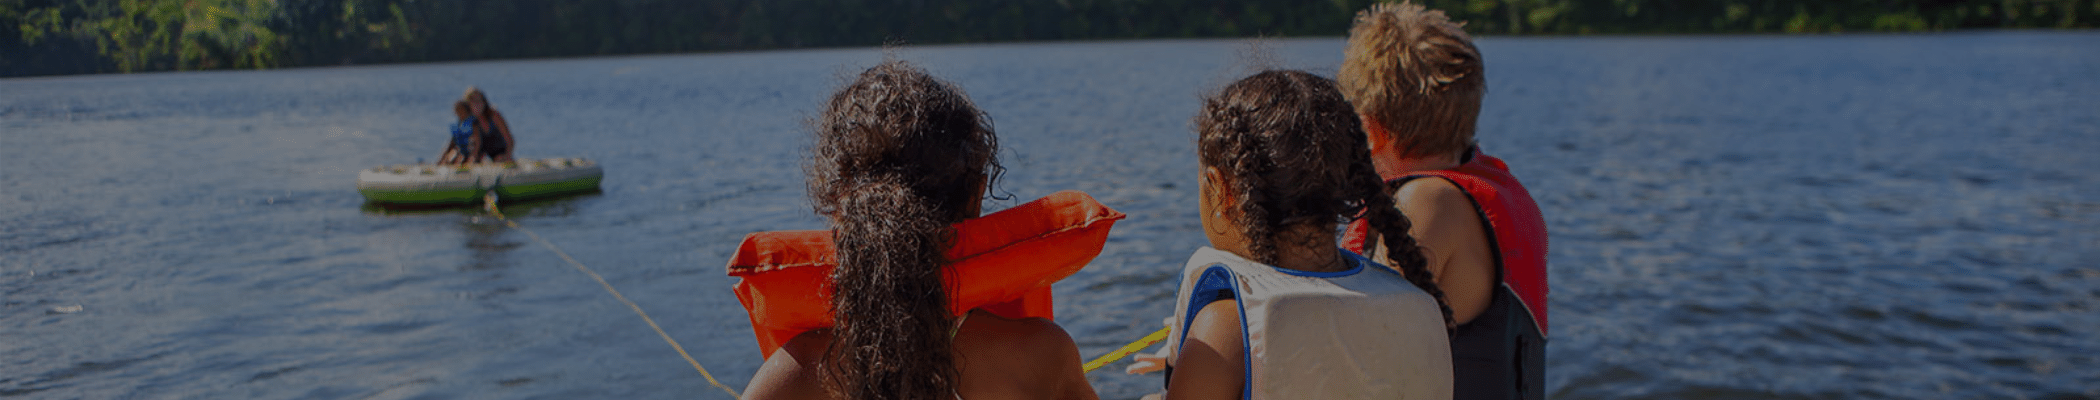 three kids in lifevests looking onto the lake at mom and little brother on a raft